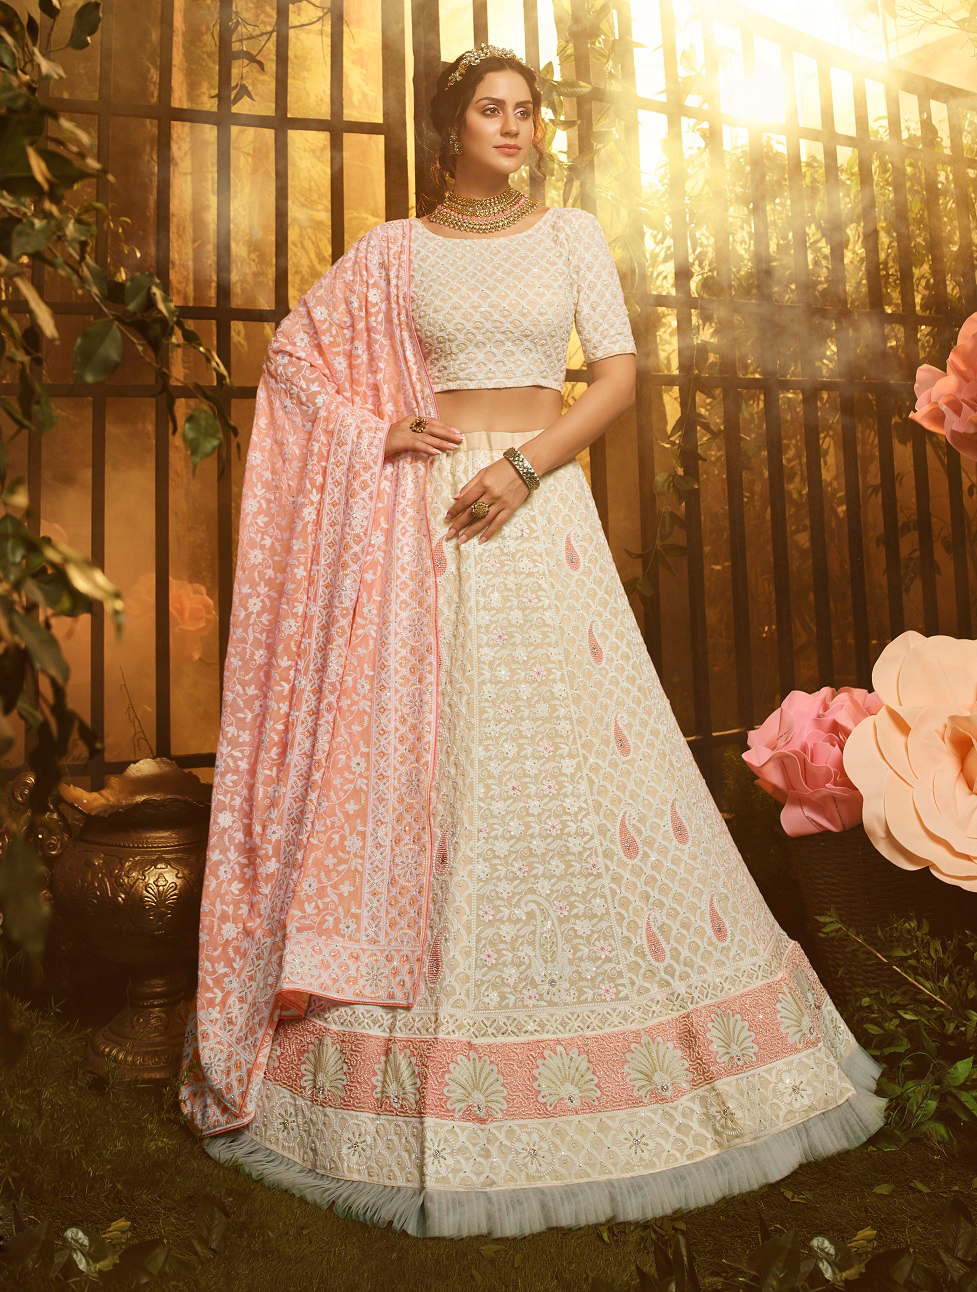 New designer best georgette white color gown with pink color dupataa.